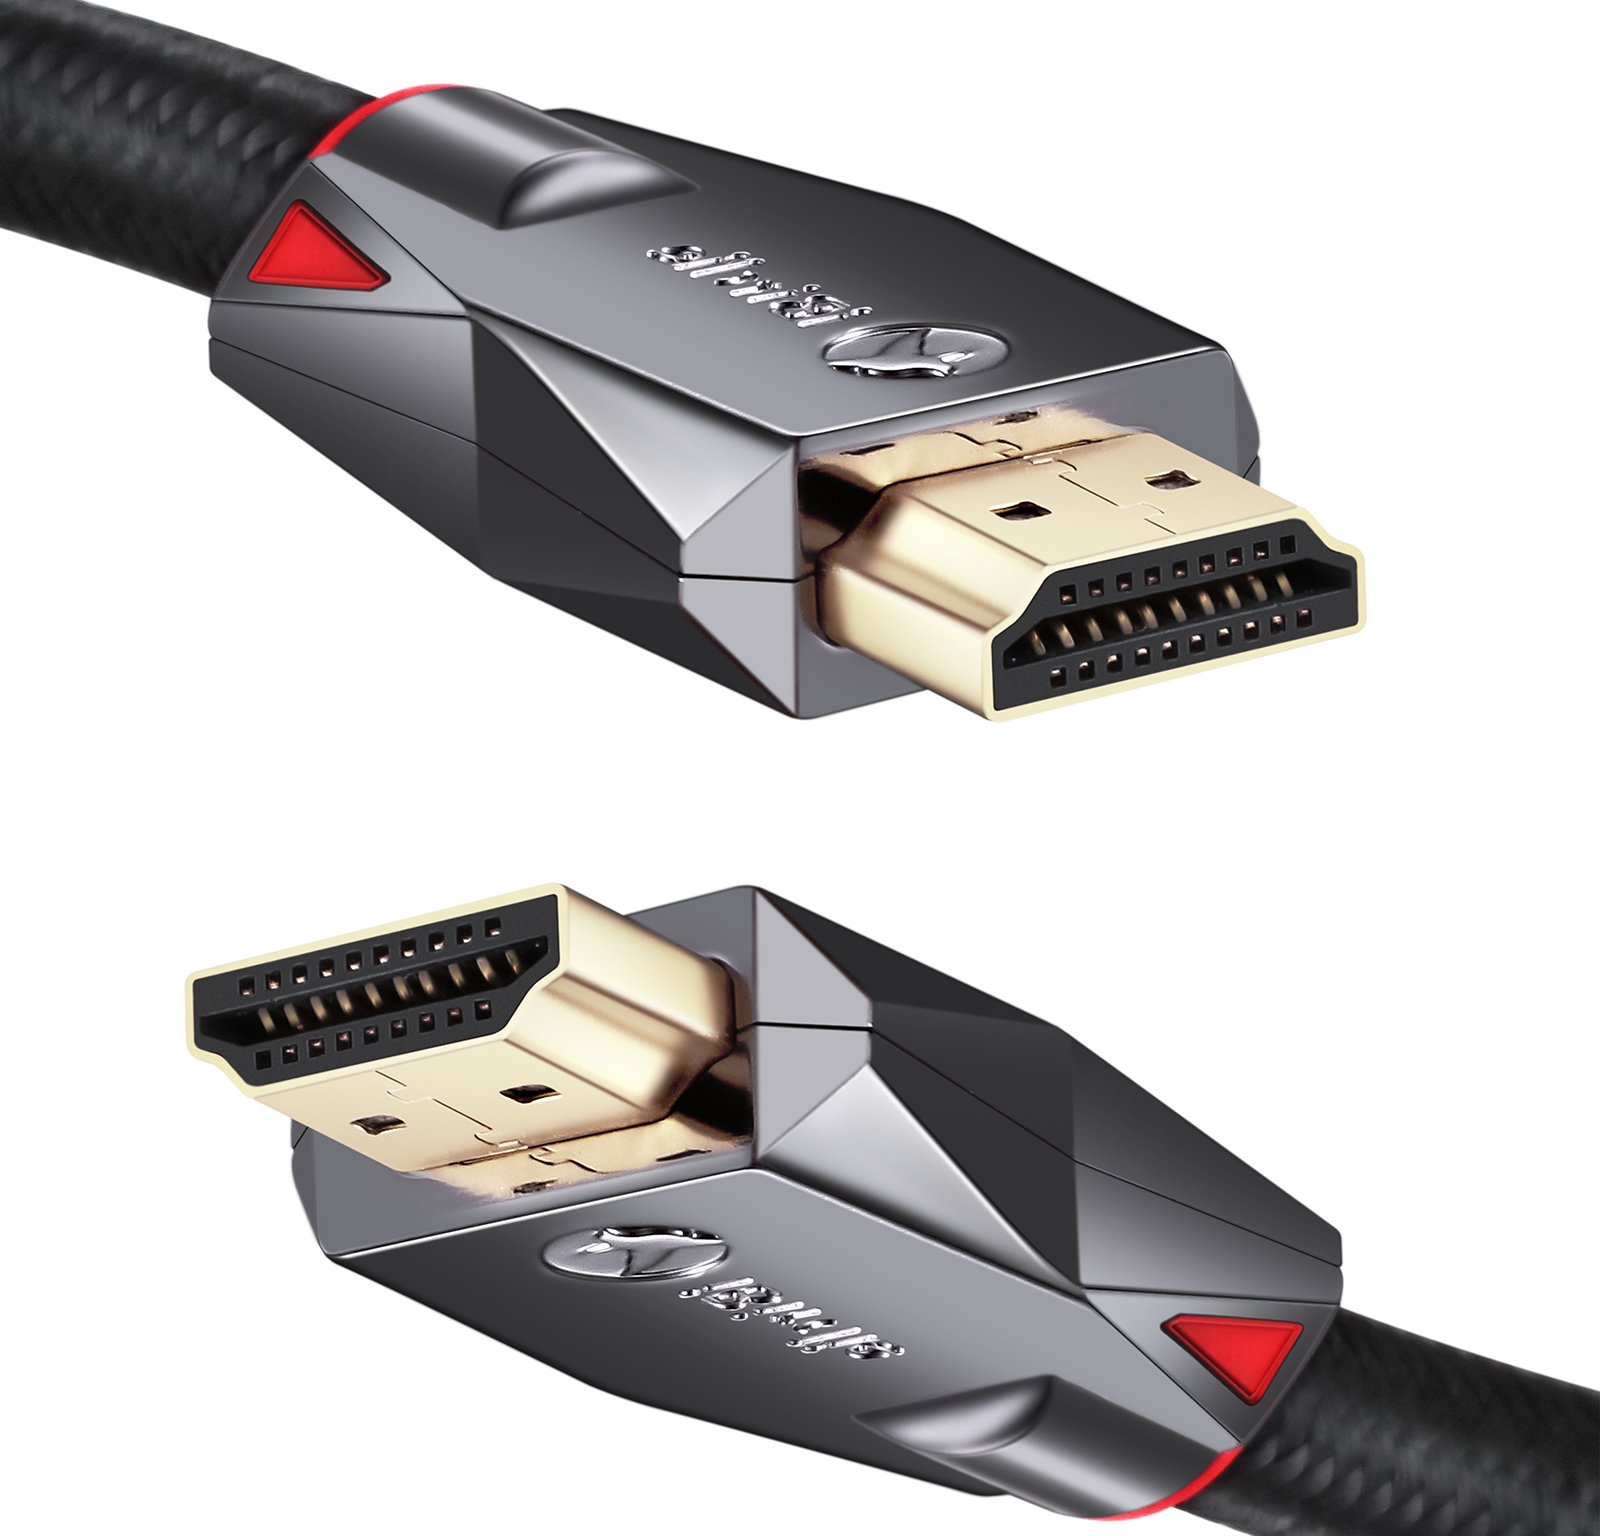 4K High Speed HDMI Cable 30ft - HDMI 2.0 4K Ultra HD HDR Cord - Supports 4K 60hz, 1080p 240hz, 3D 120hz, HDCP 2.2 and ARC - 24AWG by iBirdie by iBirdie (Image #9)